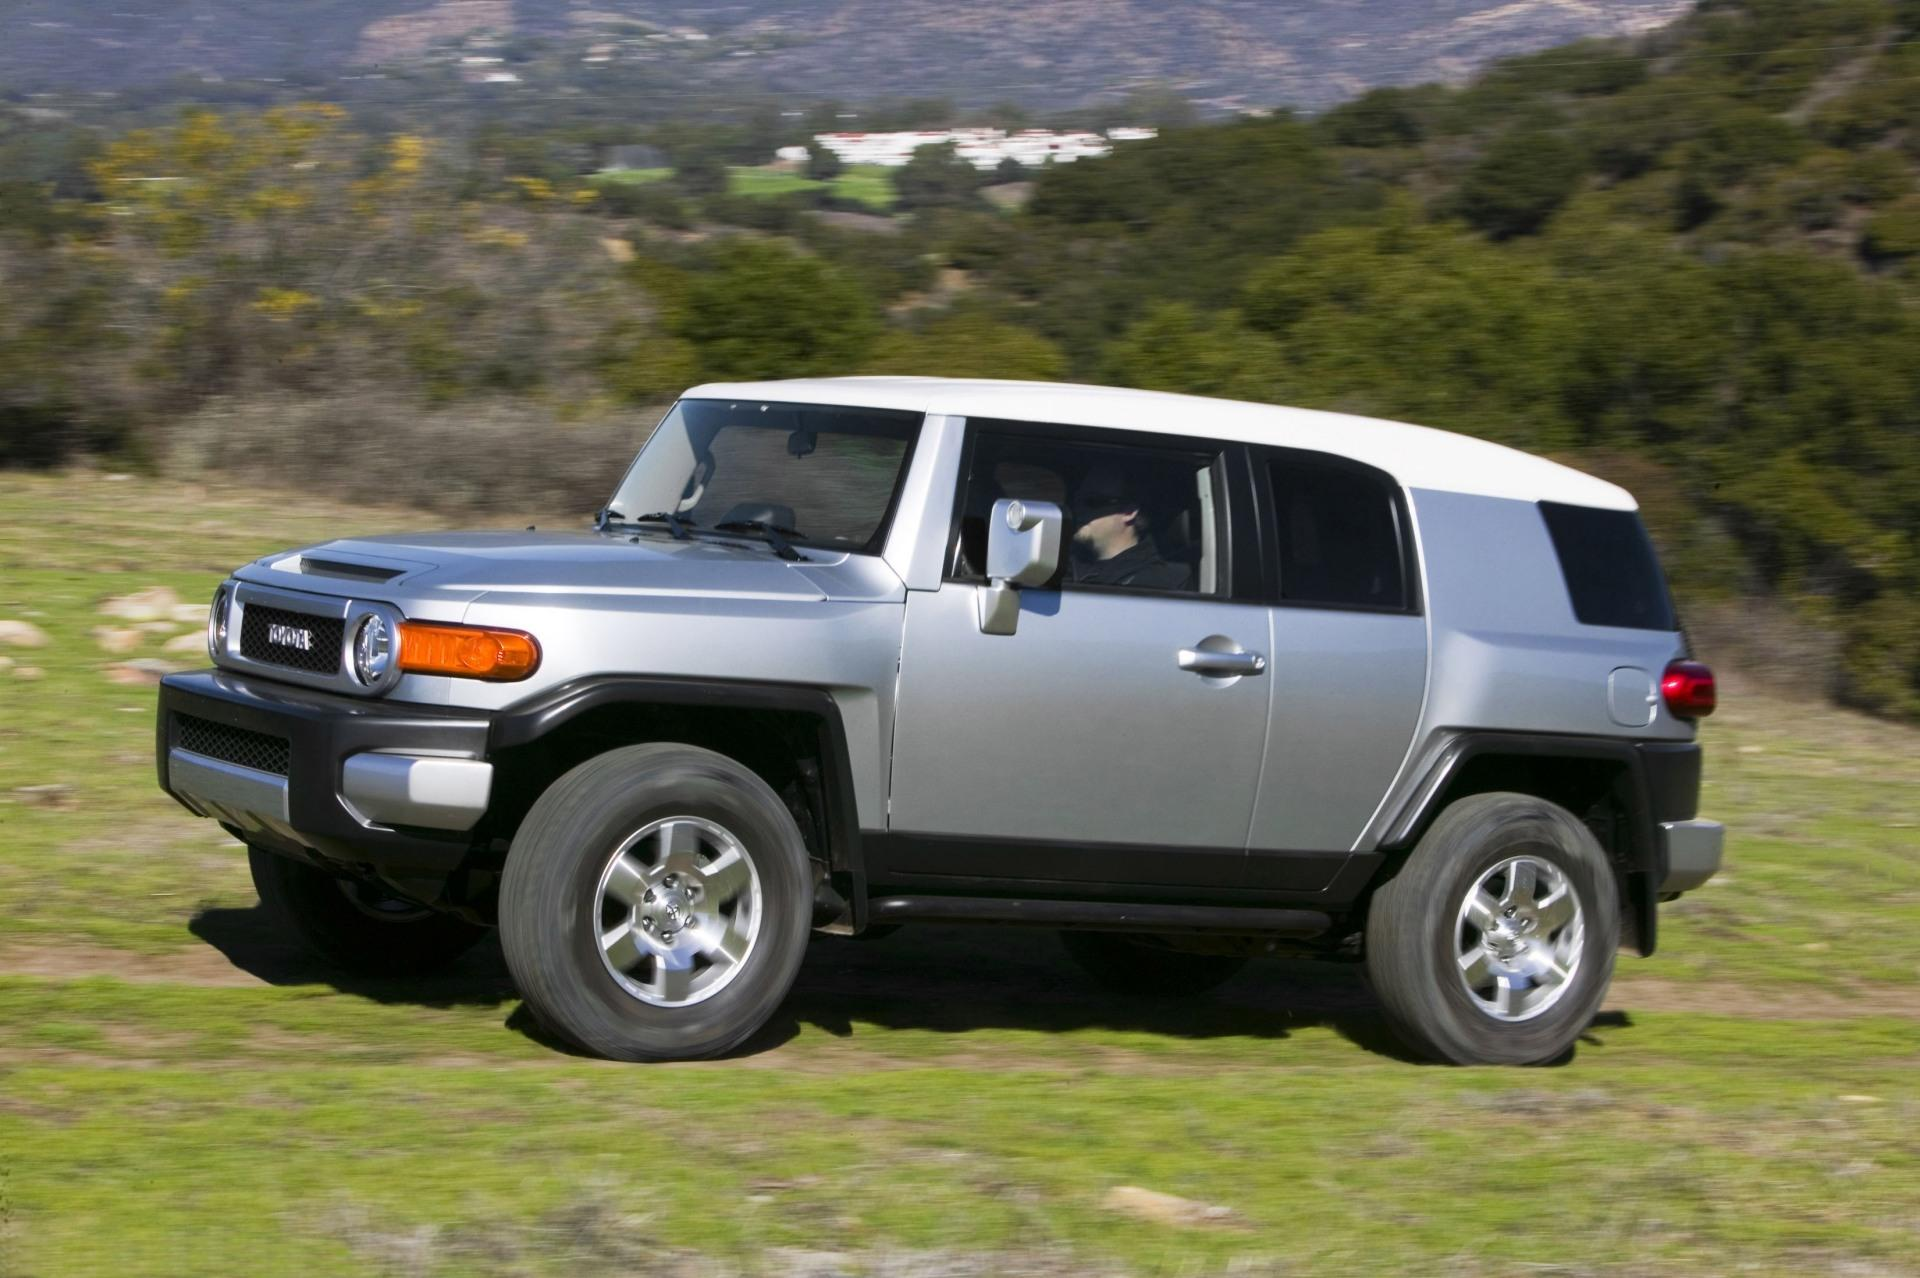 Toyota Fj Cruiser >> 2010 Toyota FJ Cruiser Image. Photo 31 of 48